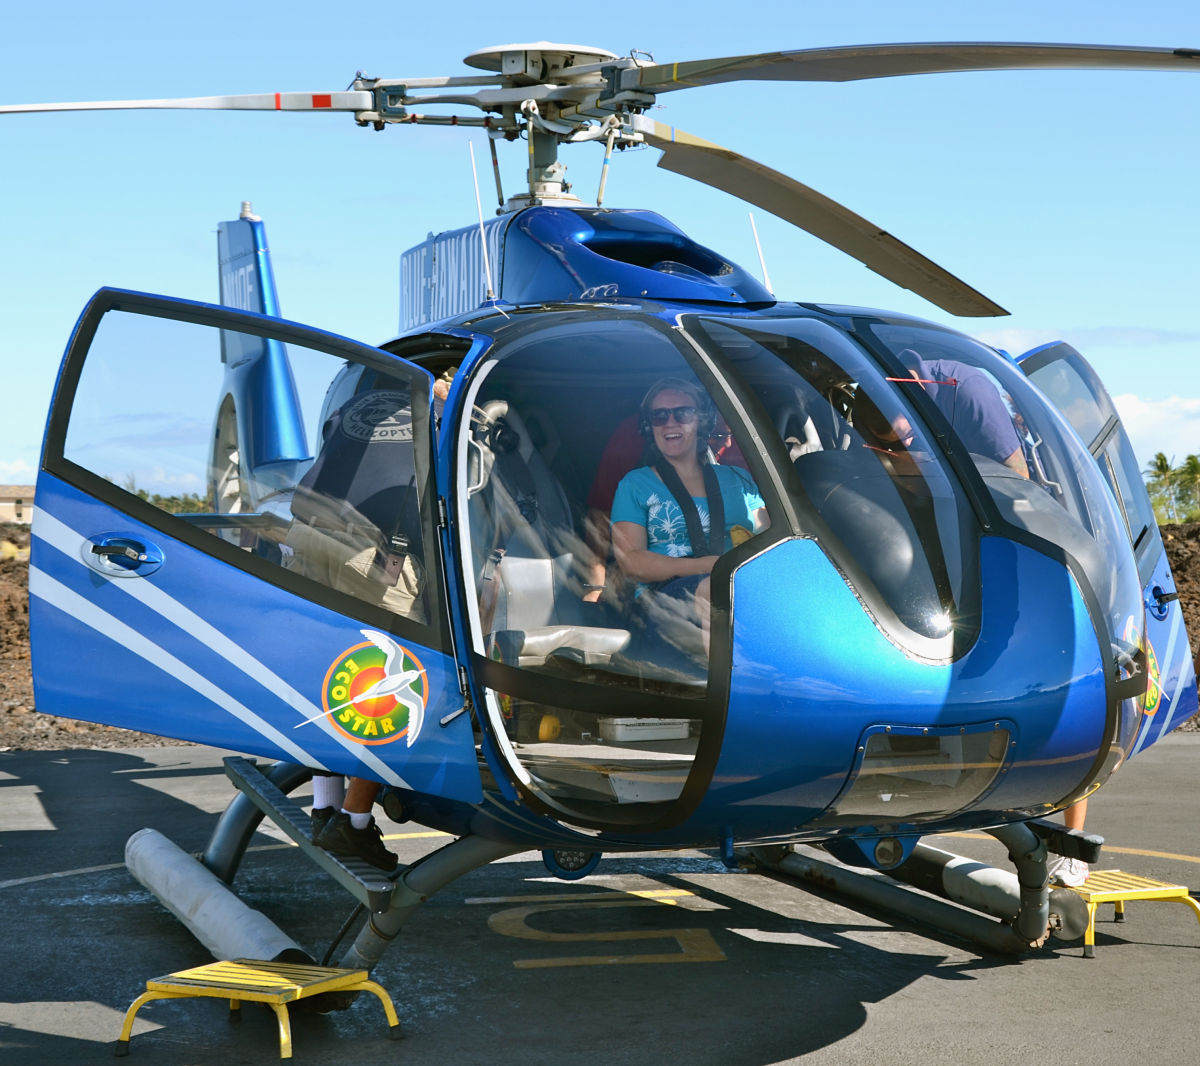 Hawaii Big Island with Kids - Blue Hawaiian Helicopter Tour